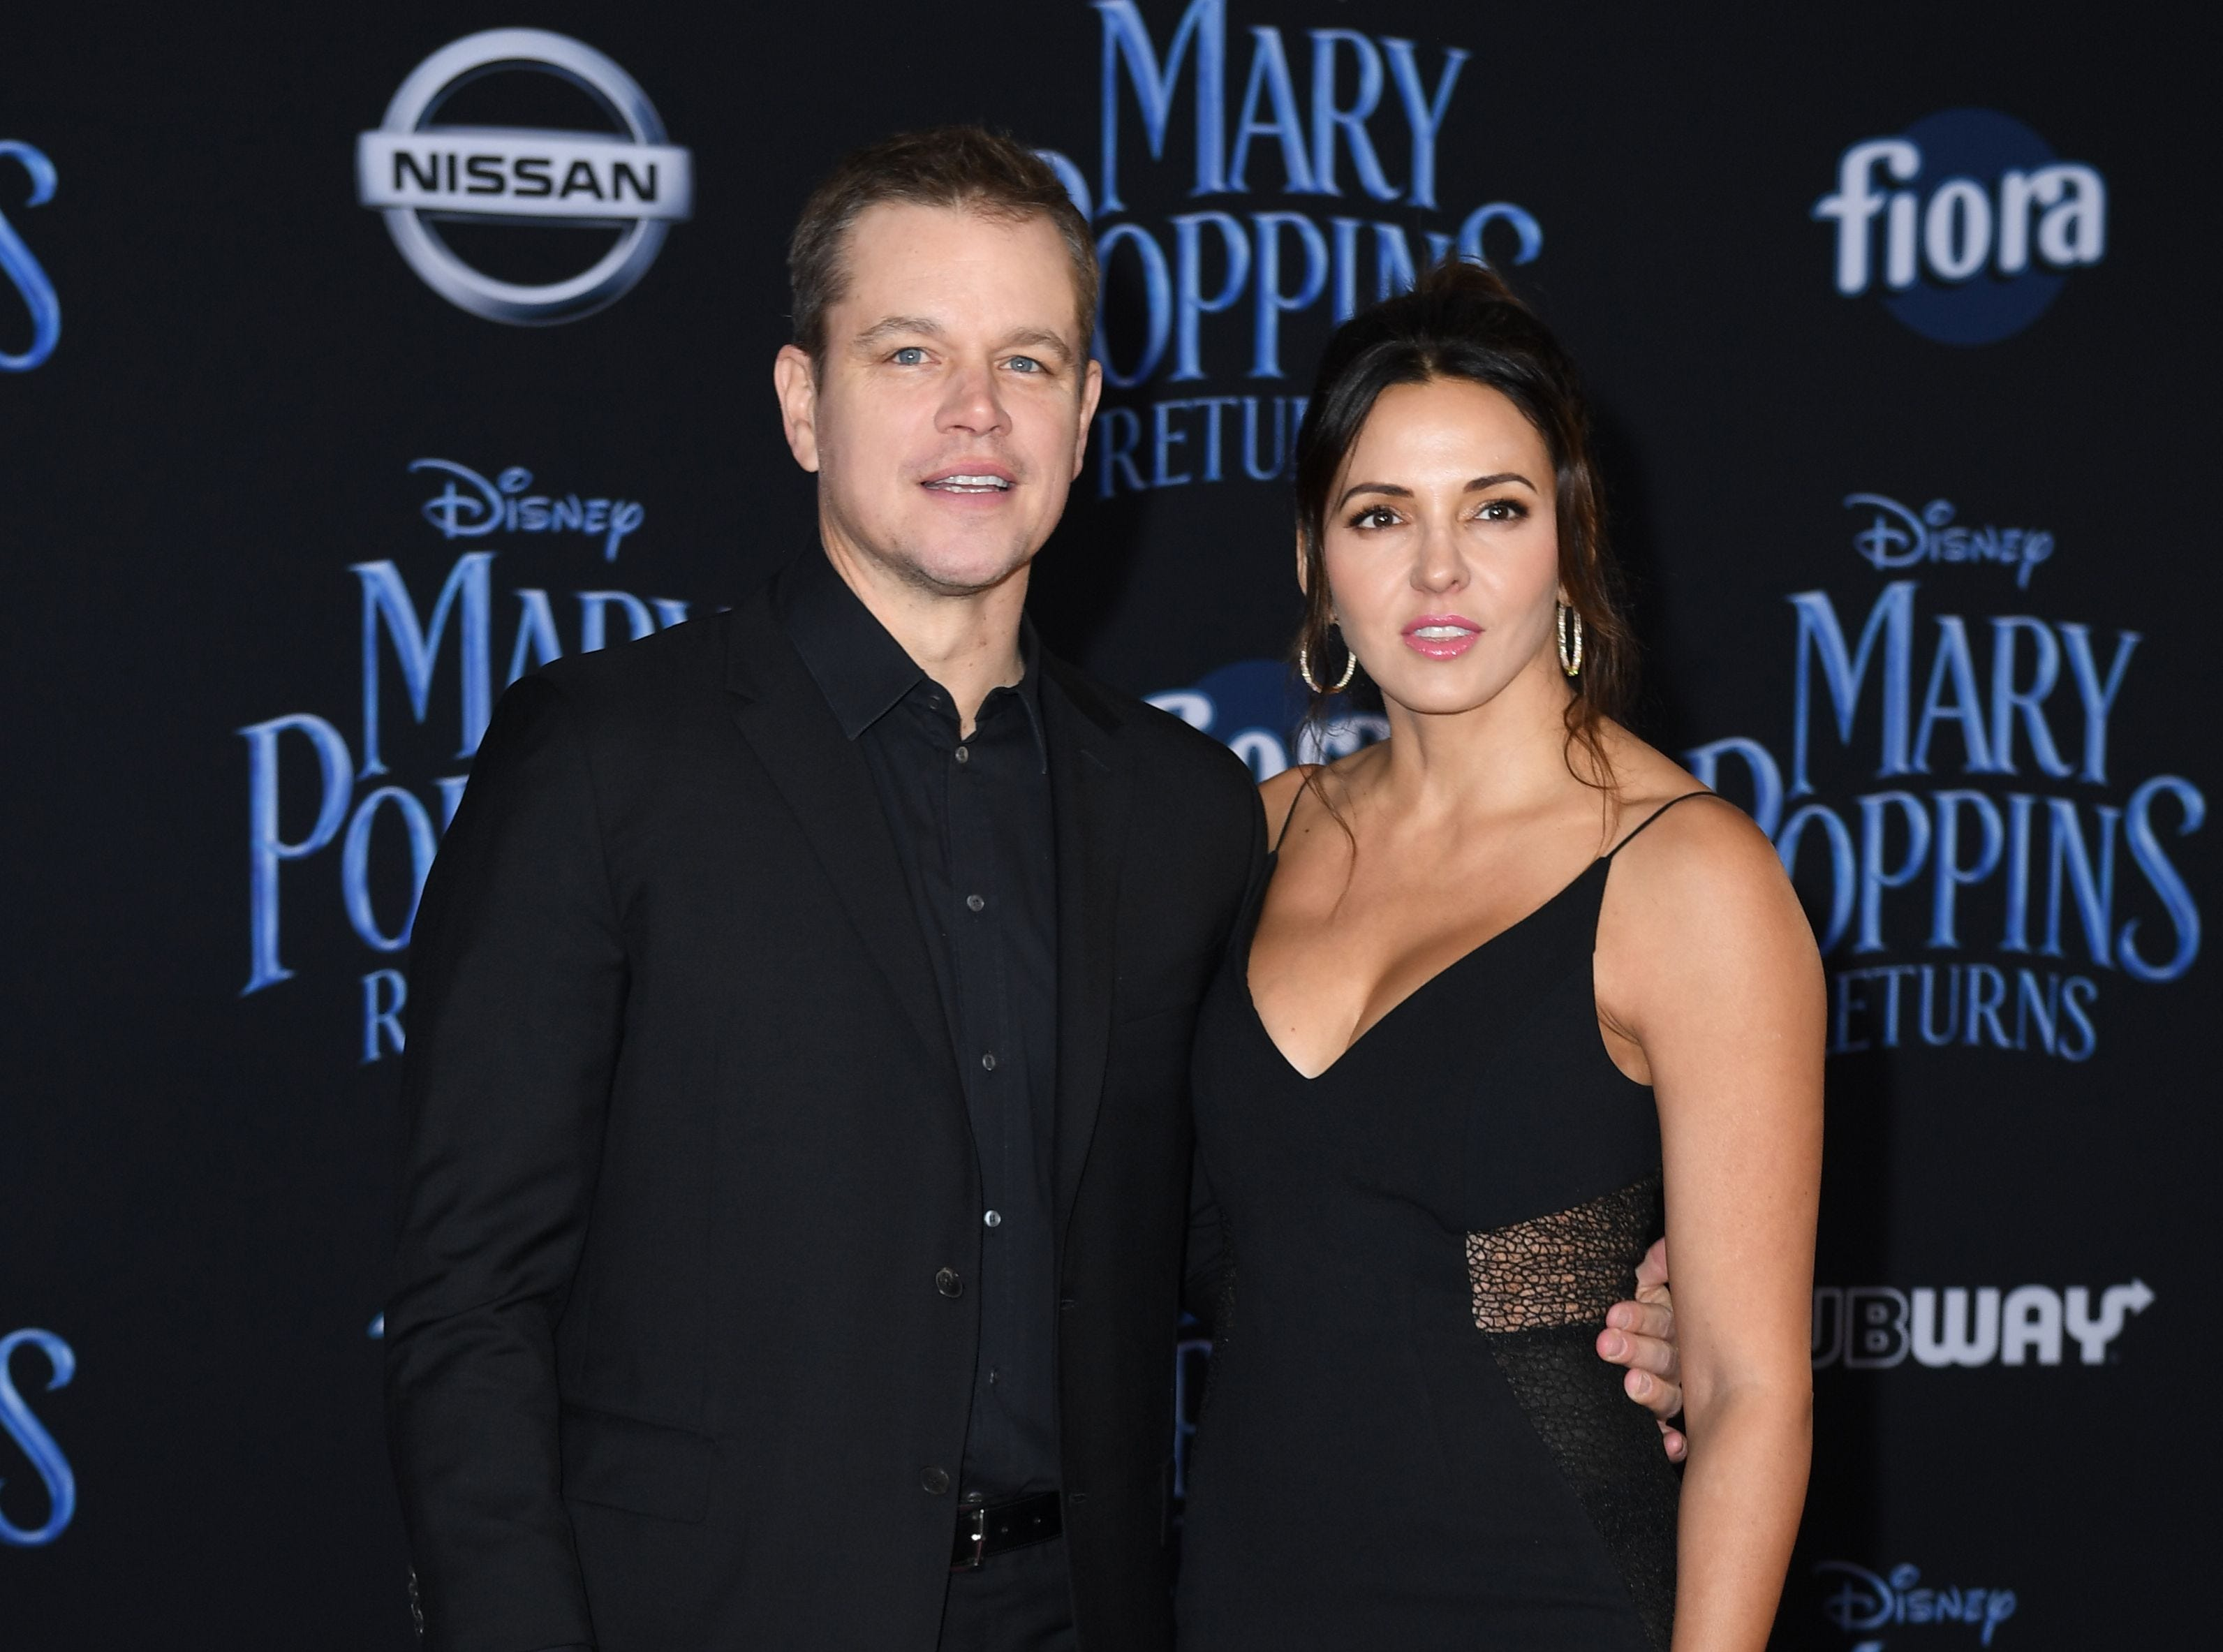 """US actor Matt Damon and his wife Luciana Barroso arrive for the world premiere of Disney's """"Mary Poppins Returns"""" at the Dolby theatre in Hollywood on November 29, 2018. (Photo by VALERIE MACON / AFP)VALERIE MACON/AFP/Getty Images ORG XMIT: 'Mary Pop ORIG FILE ID: AFP_1B8149"""